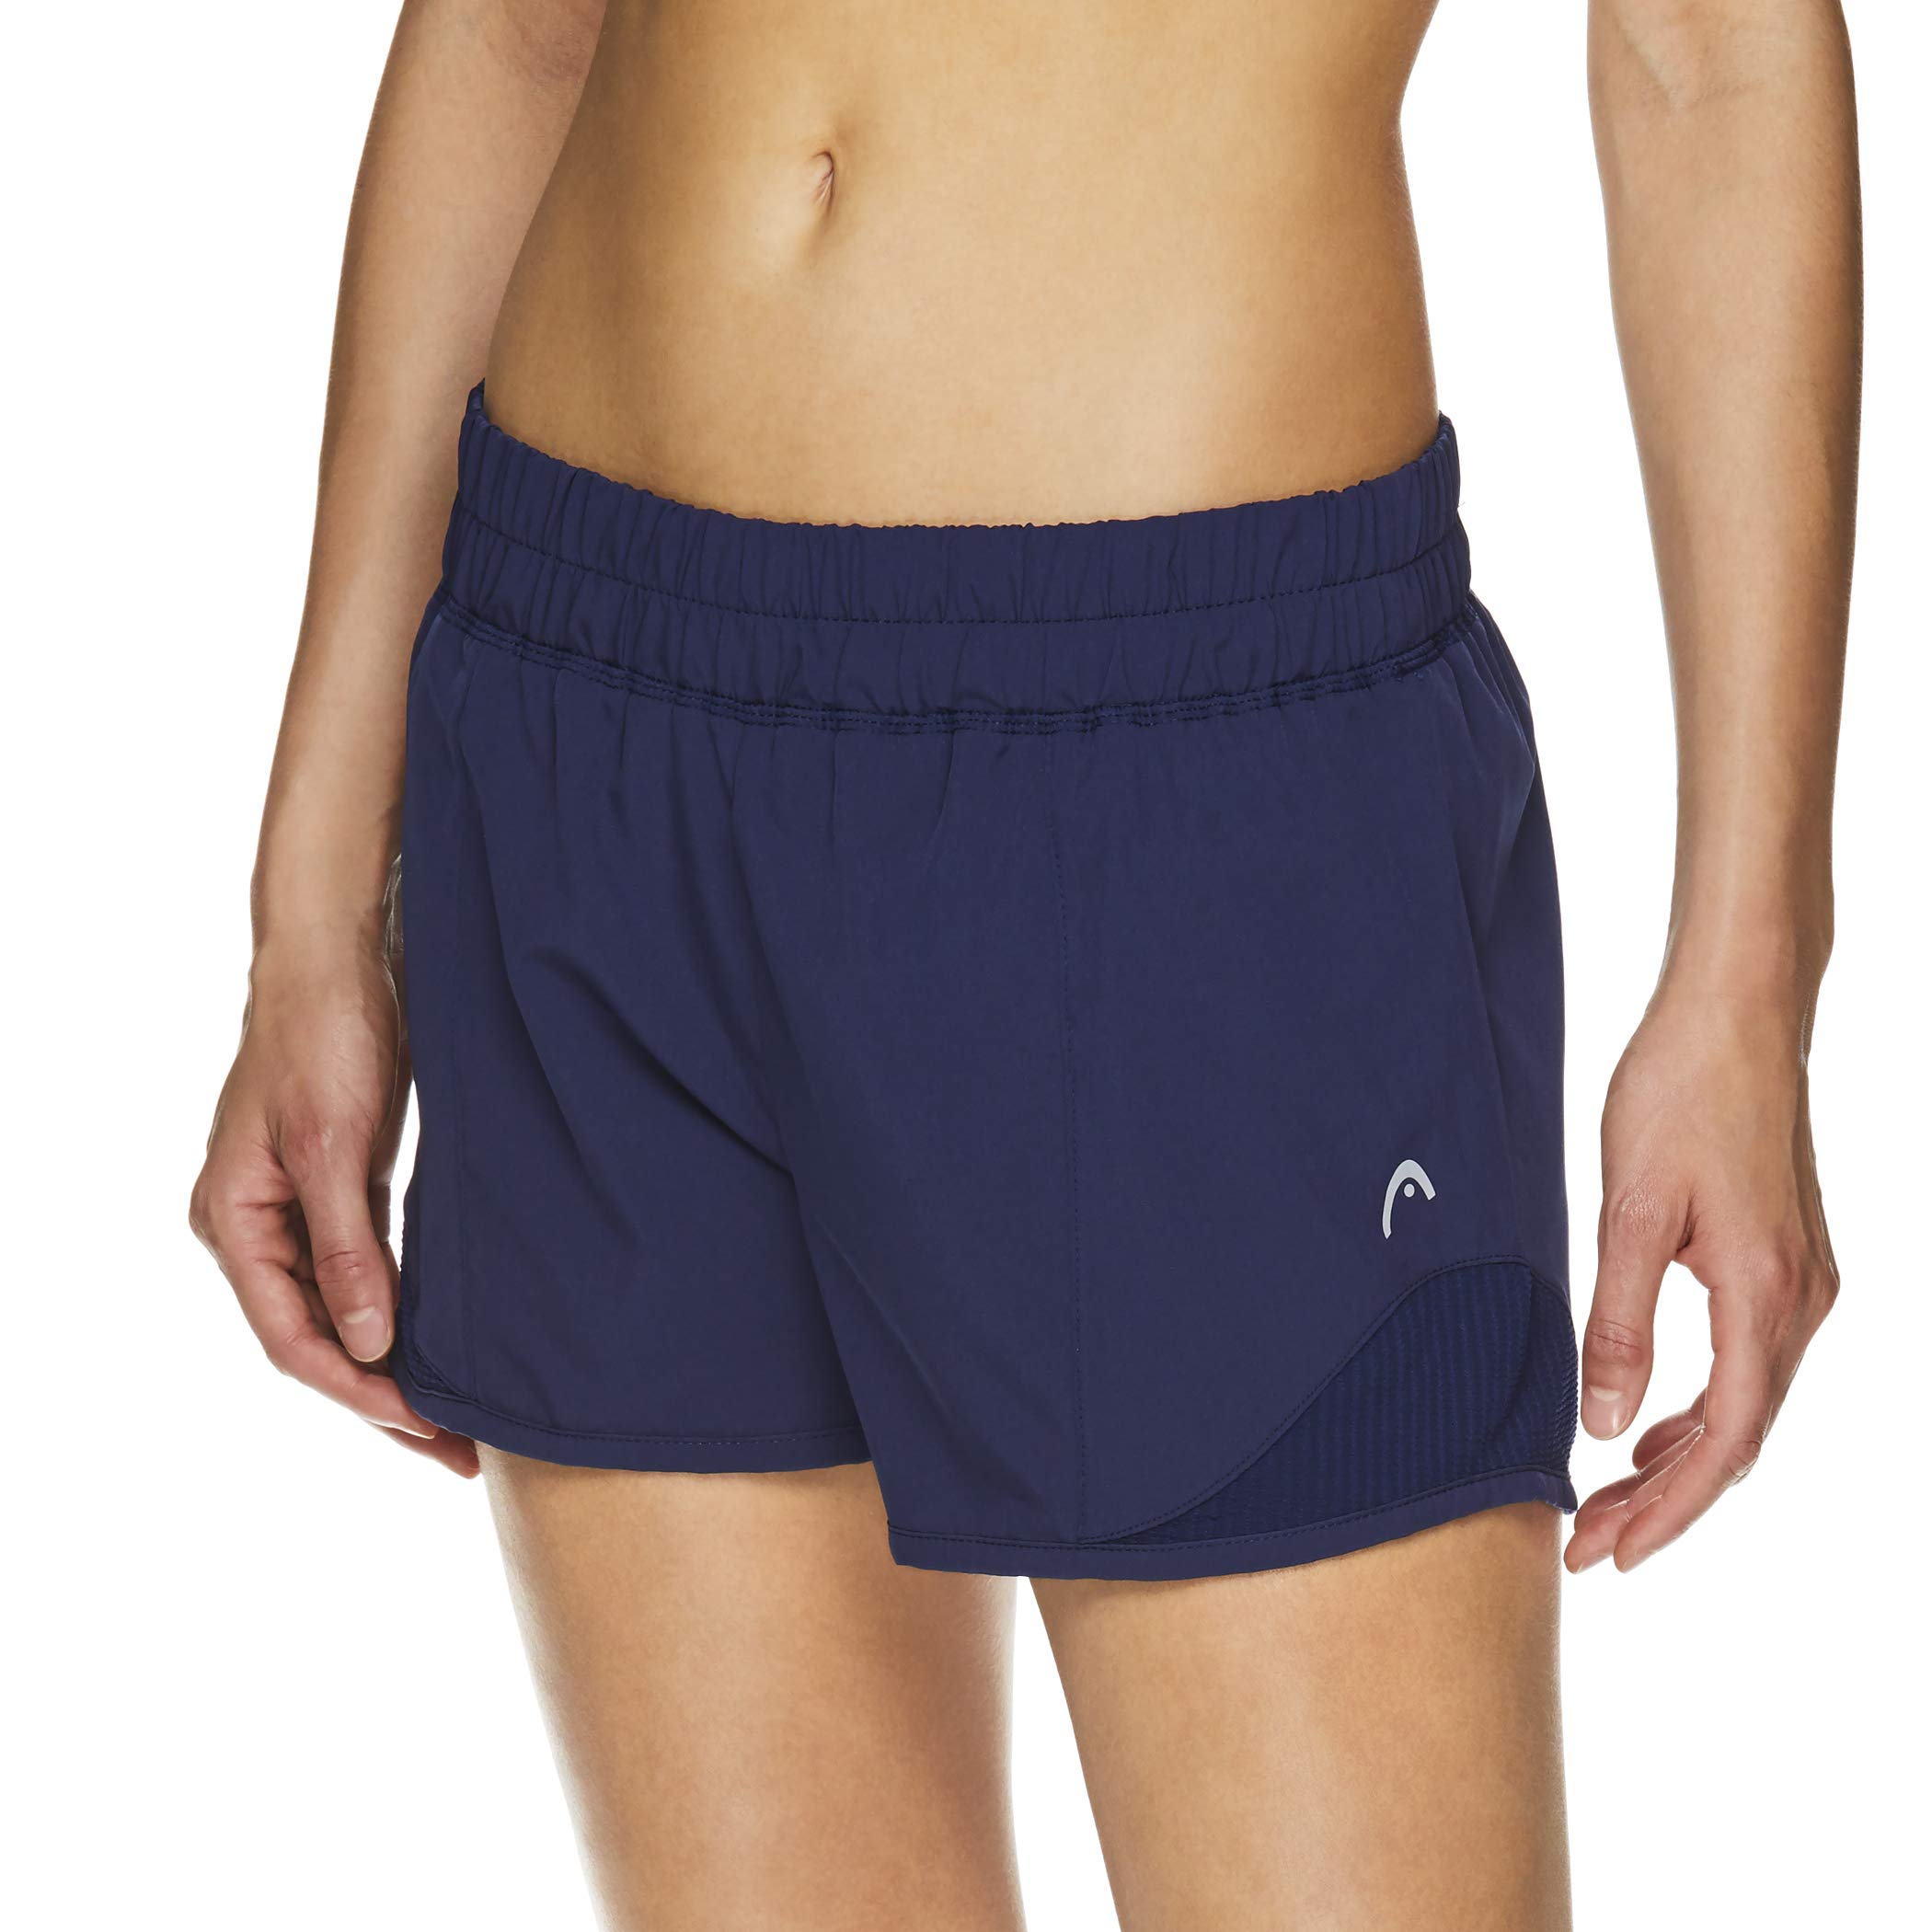 HEAD Women's Athletic Workout Shorts - Polyester Gym Training & Running Short - Partner Medieval Blue, X-Small